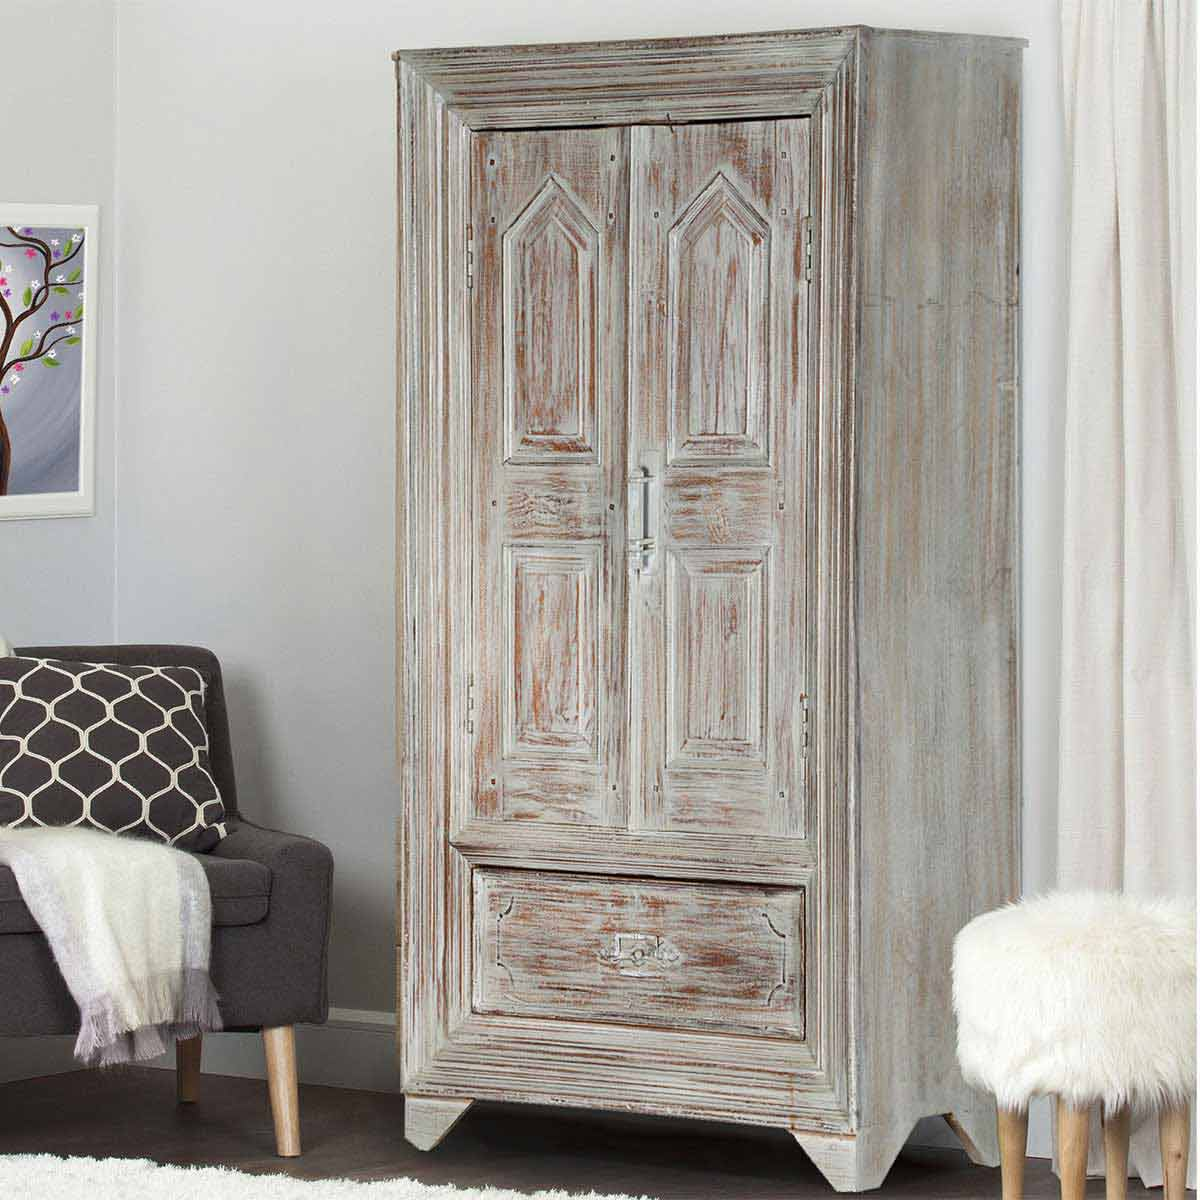 Aviston distressed finish solid wood gray armoire cabinet hover to zoom